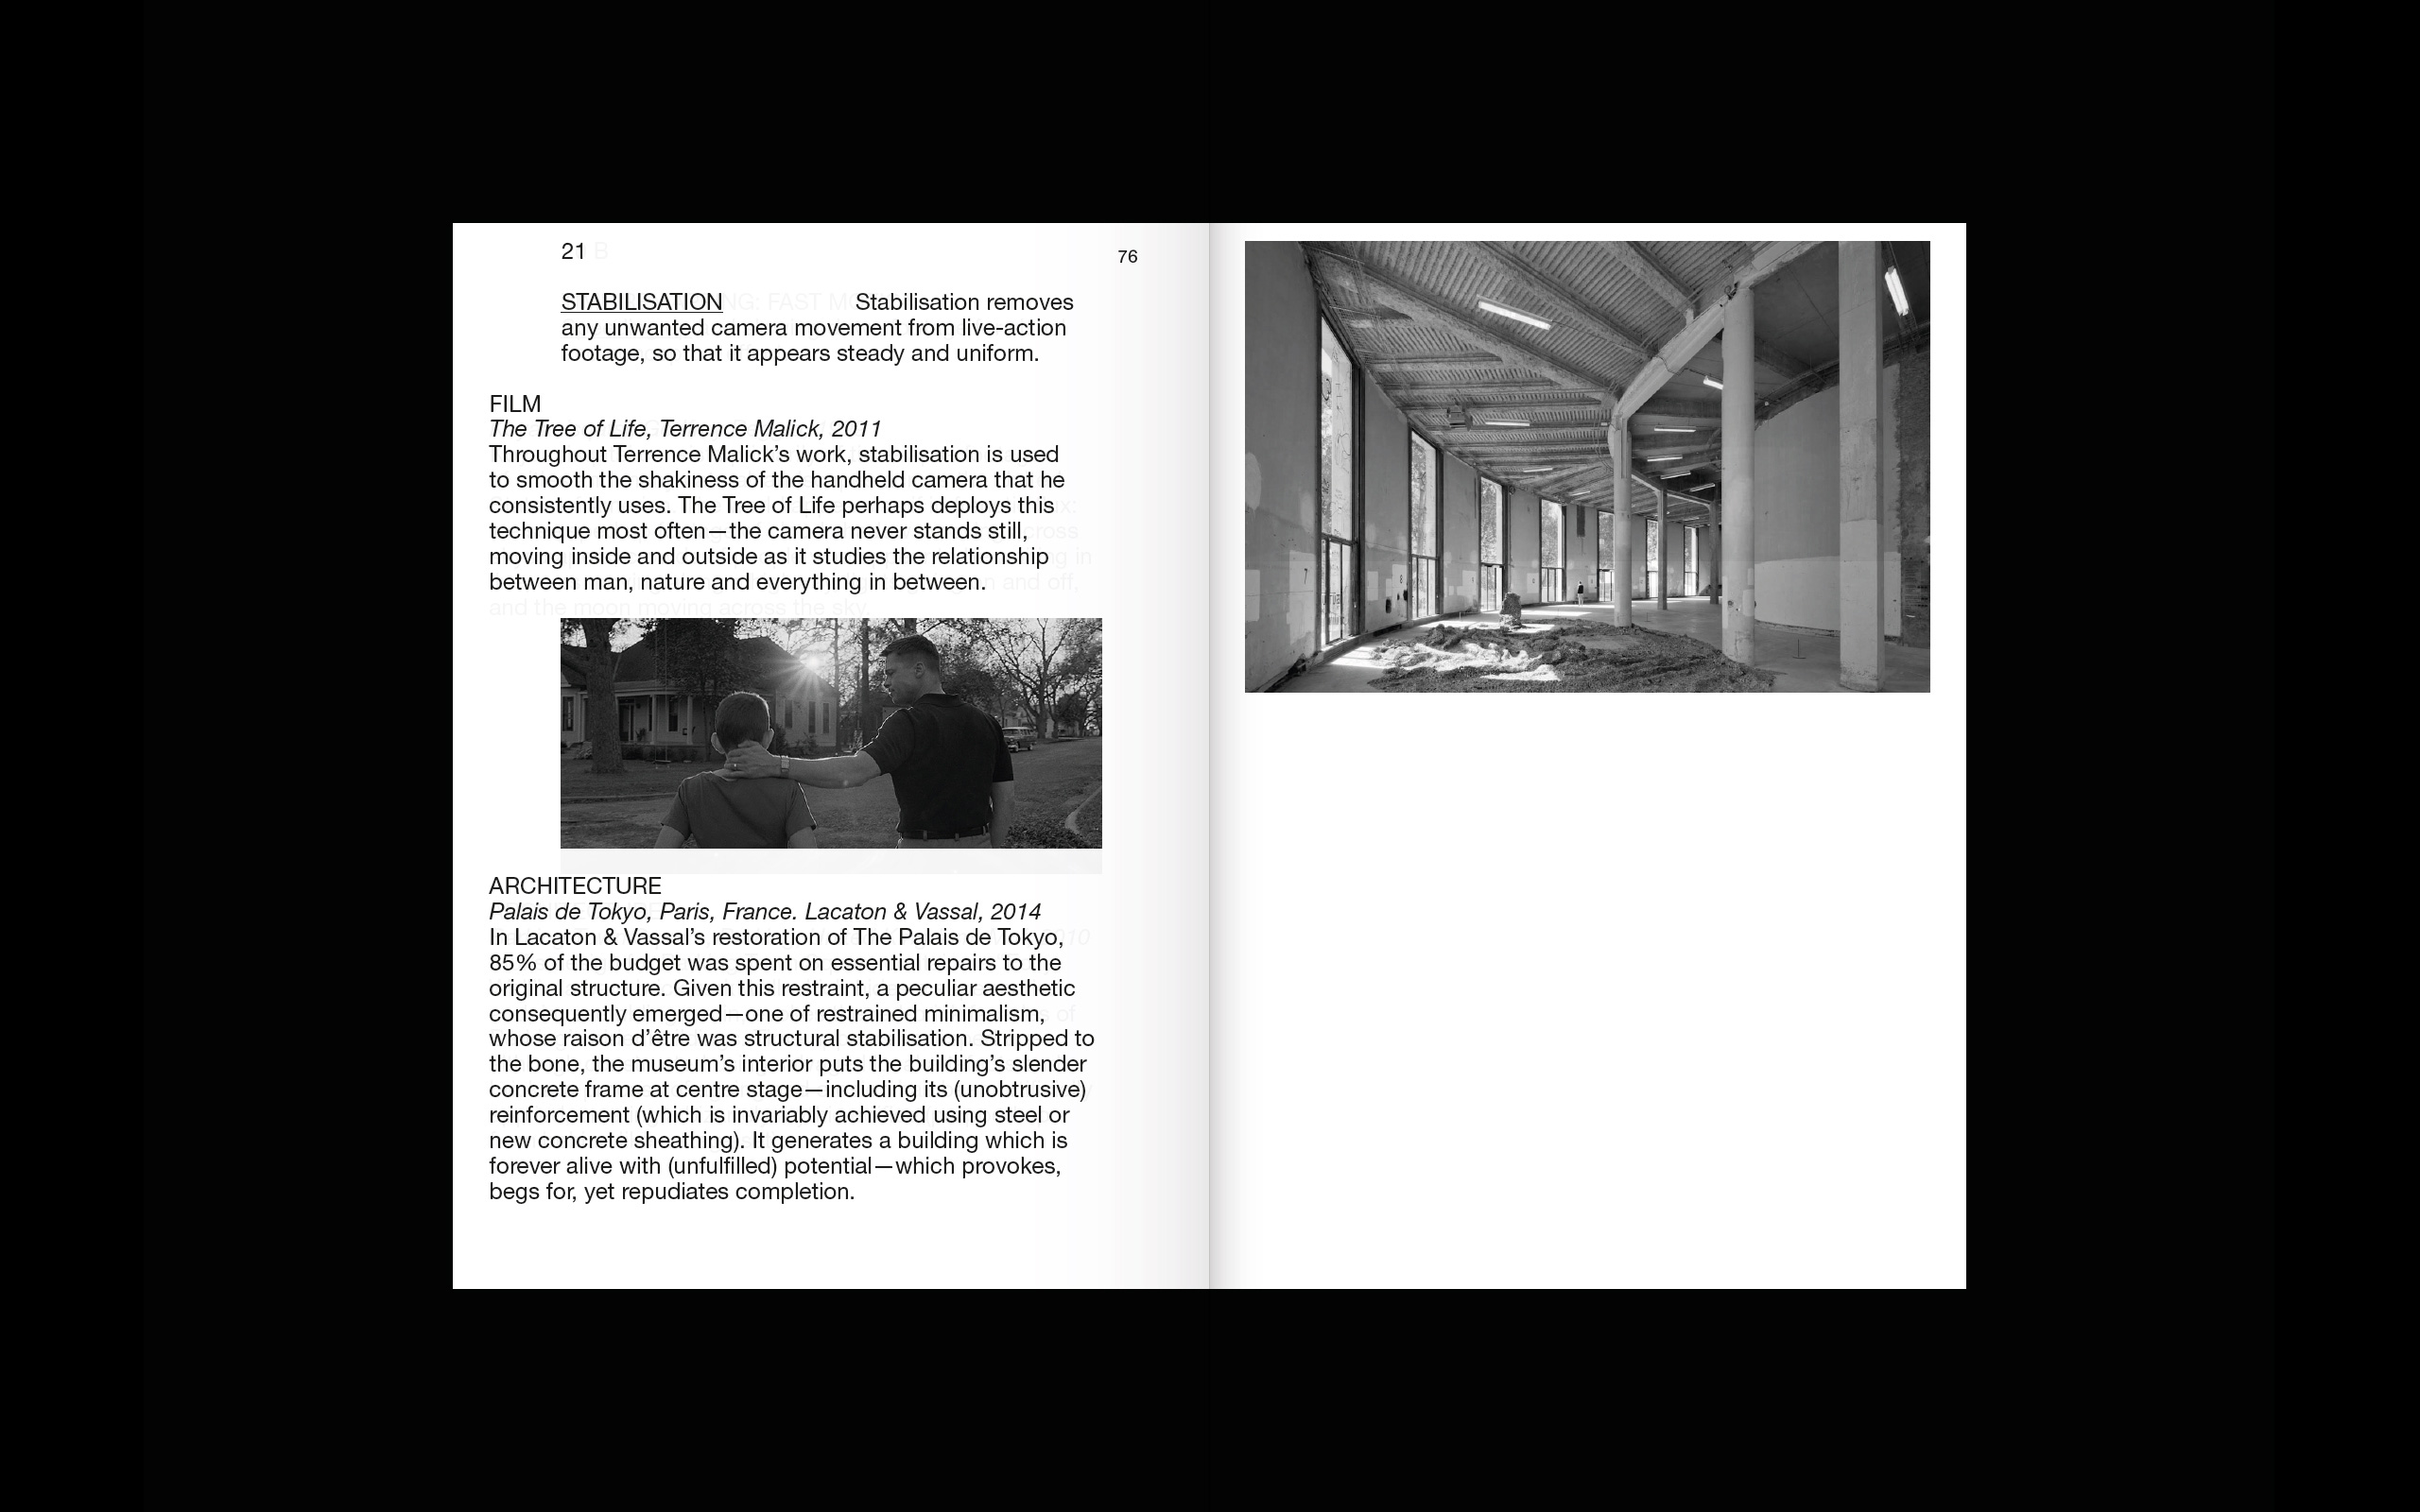 #laurajouan Manual for Redesigning Reality ADS4 project, publication, Architecture Department at the Royal College of Art 2018